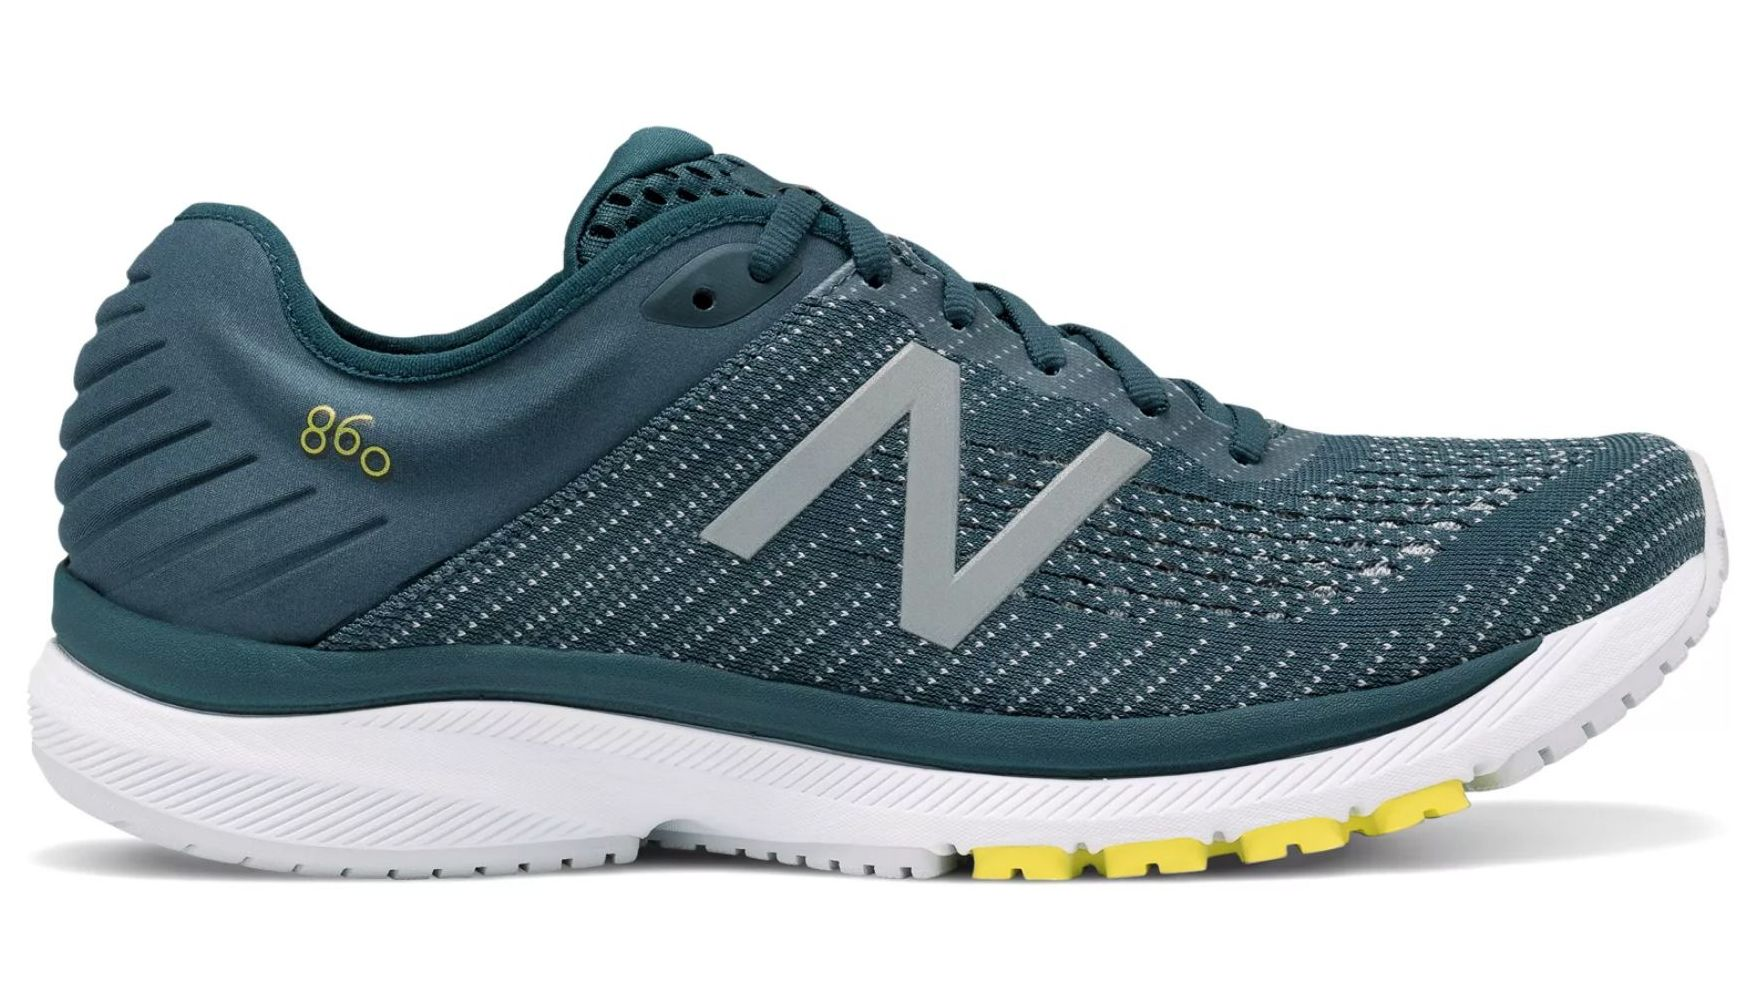 best sneakers 3d0a2 9ec66 Best New Balance Running Shoes | New Balance Shoe Reviews 2019